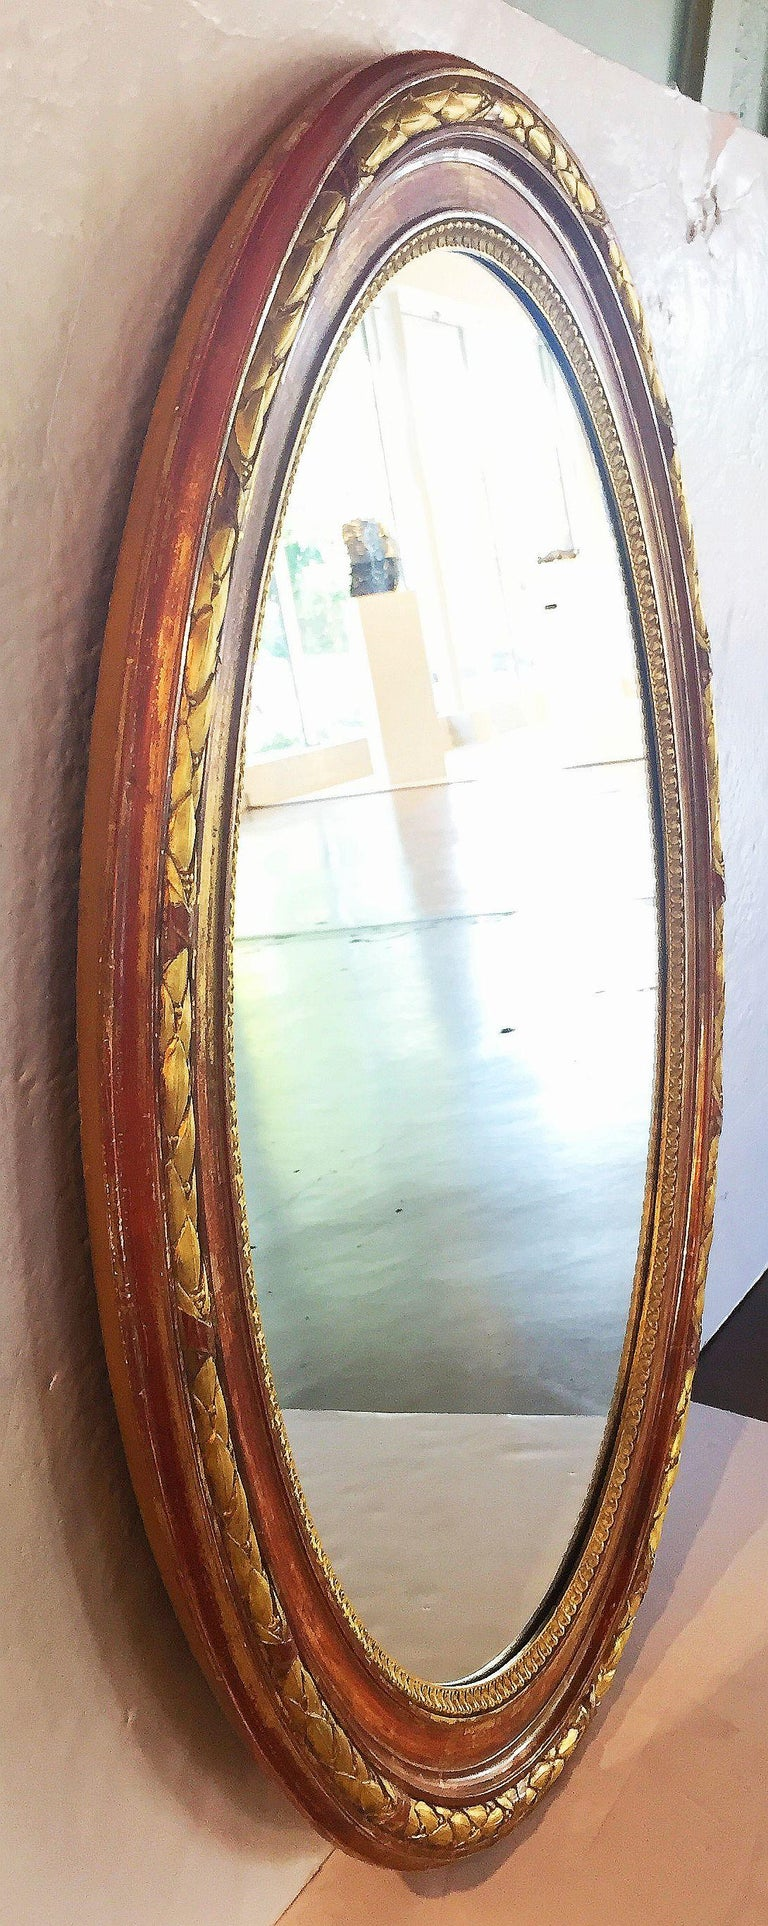 A fine large Louis Philippe oval gilt mirror from France, featuring a raised laurel leaf with ribbon design around the circumference.  Dimensions are: H 45 3/4 inches x W 36 3/4 inches x D 2 1/2 inches.